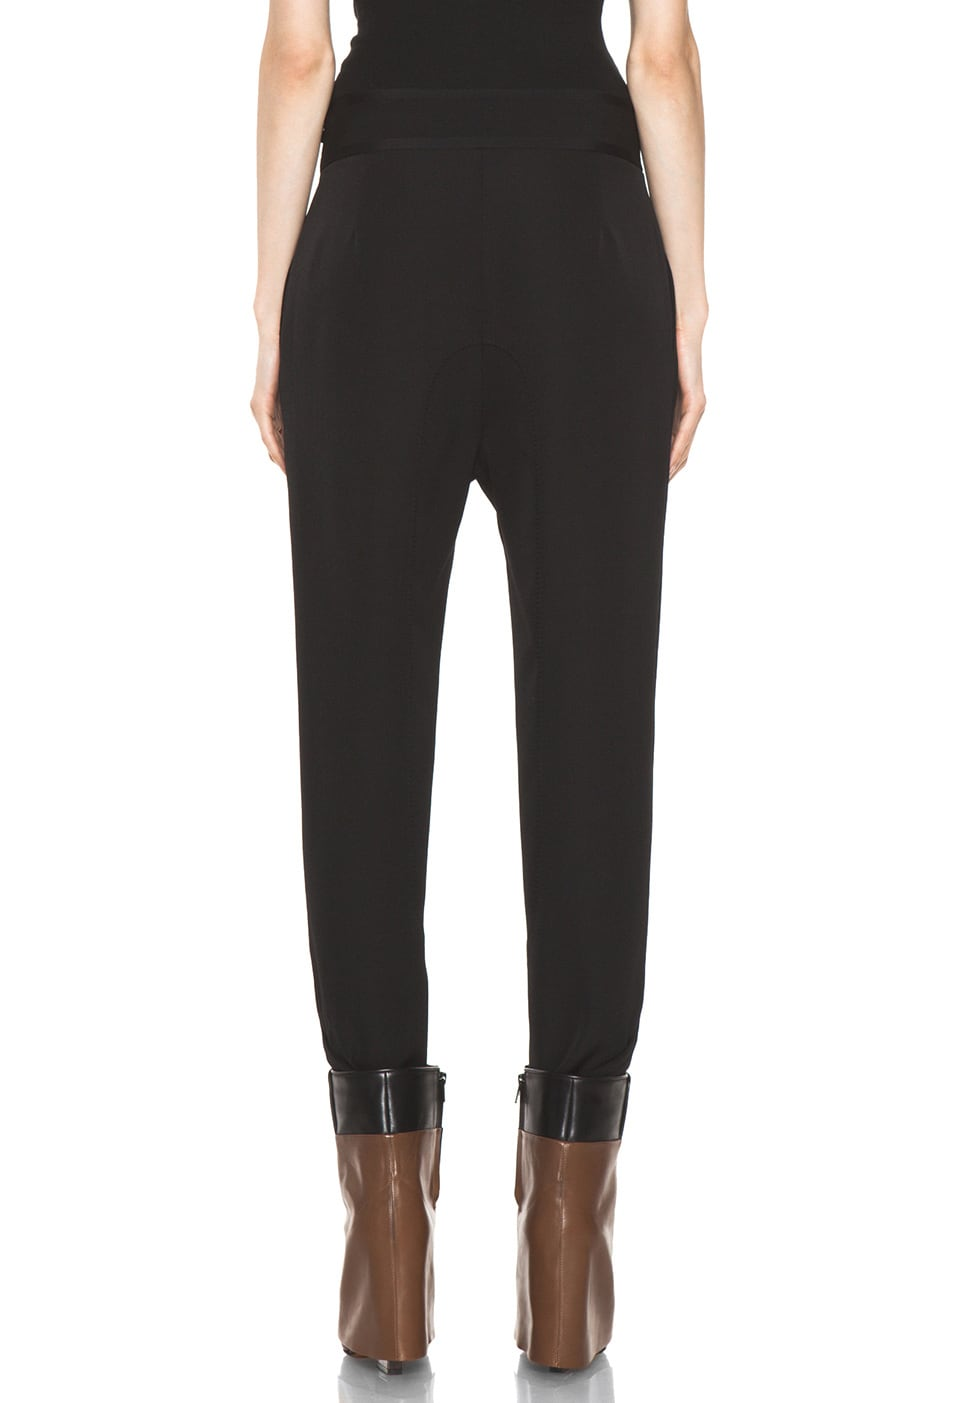 Image 4 of GIVENCHY Sarouel Pant in Black